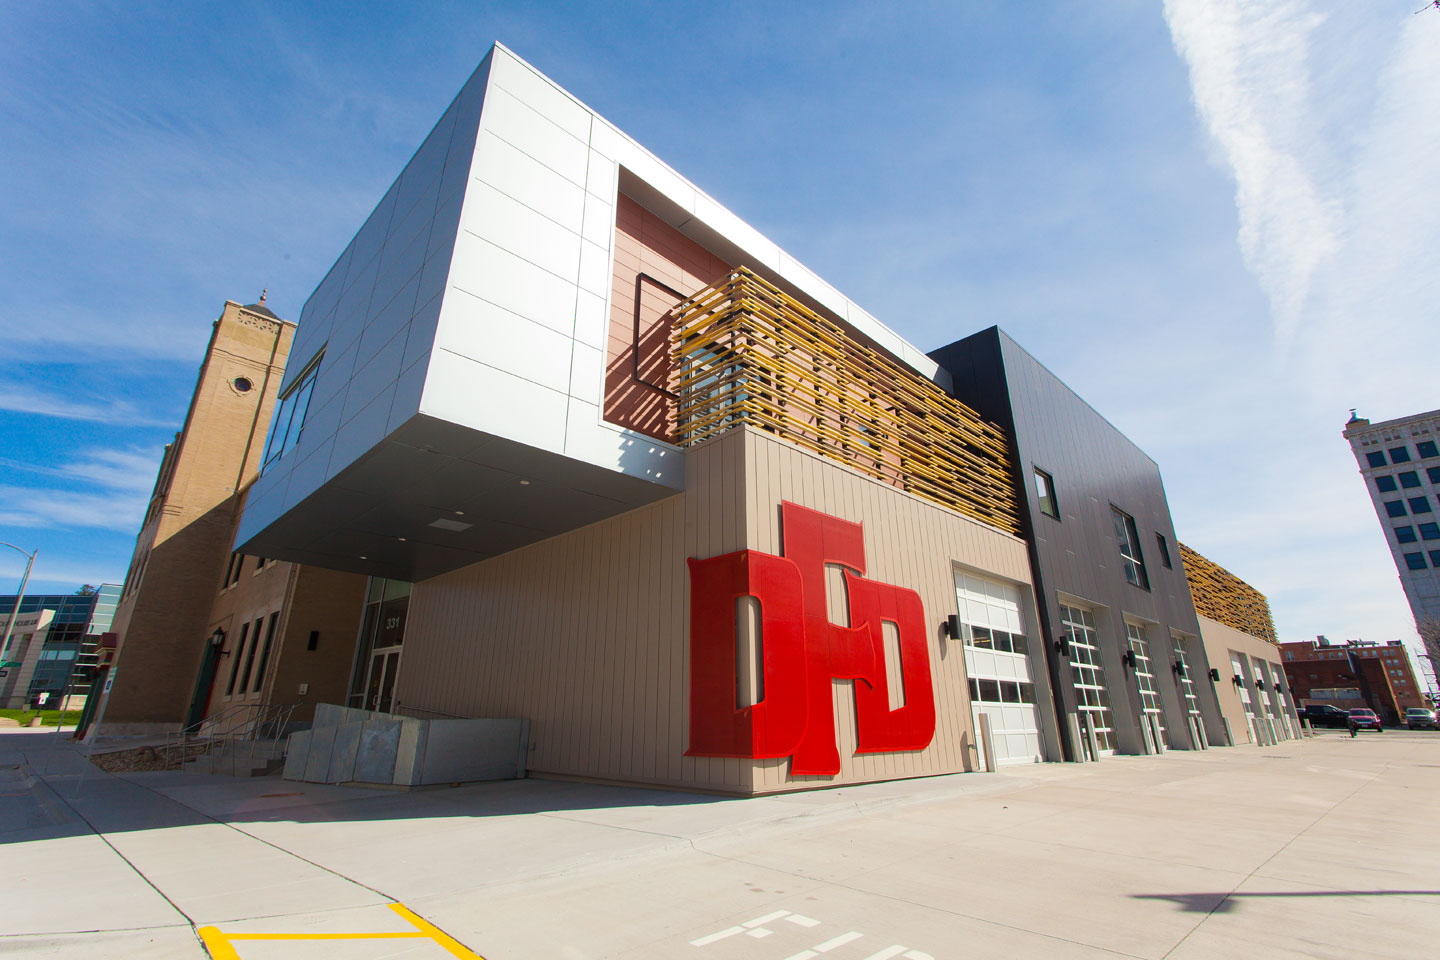 Extreme perspective view of the new Davenport Fire Department building